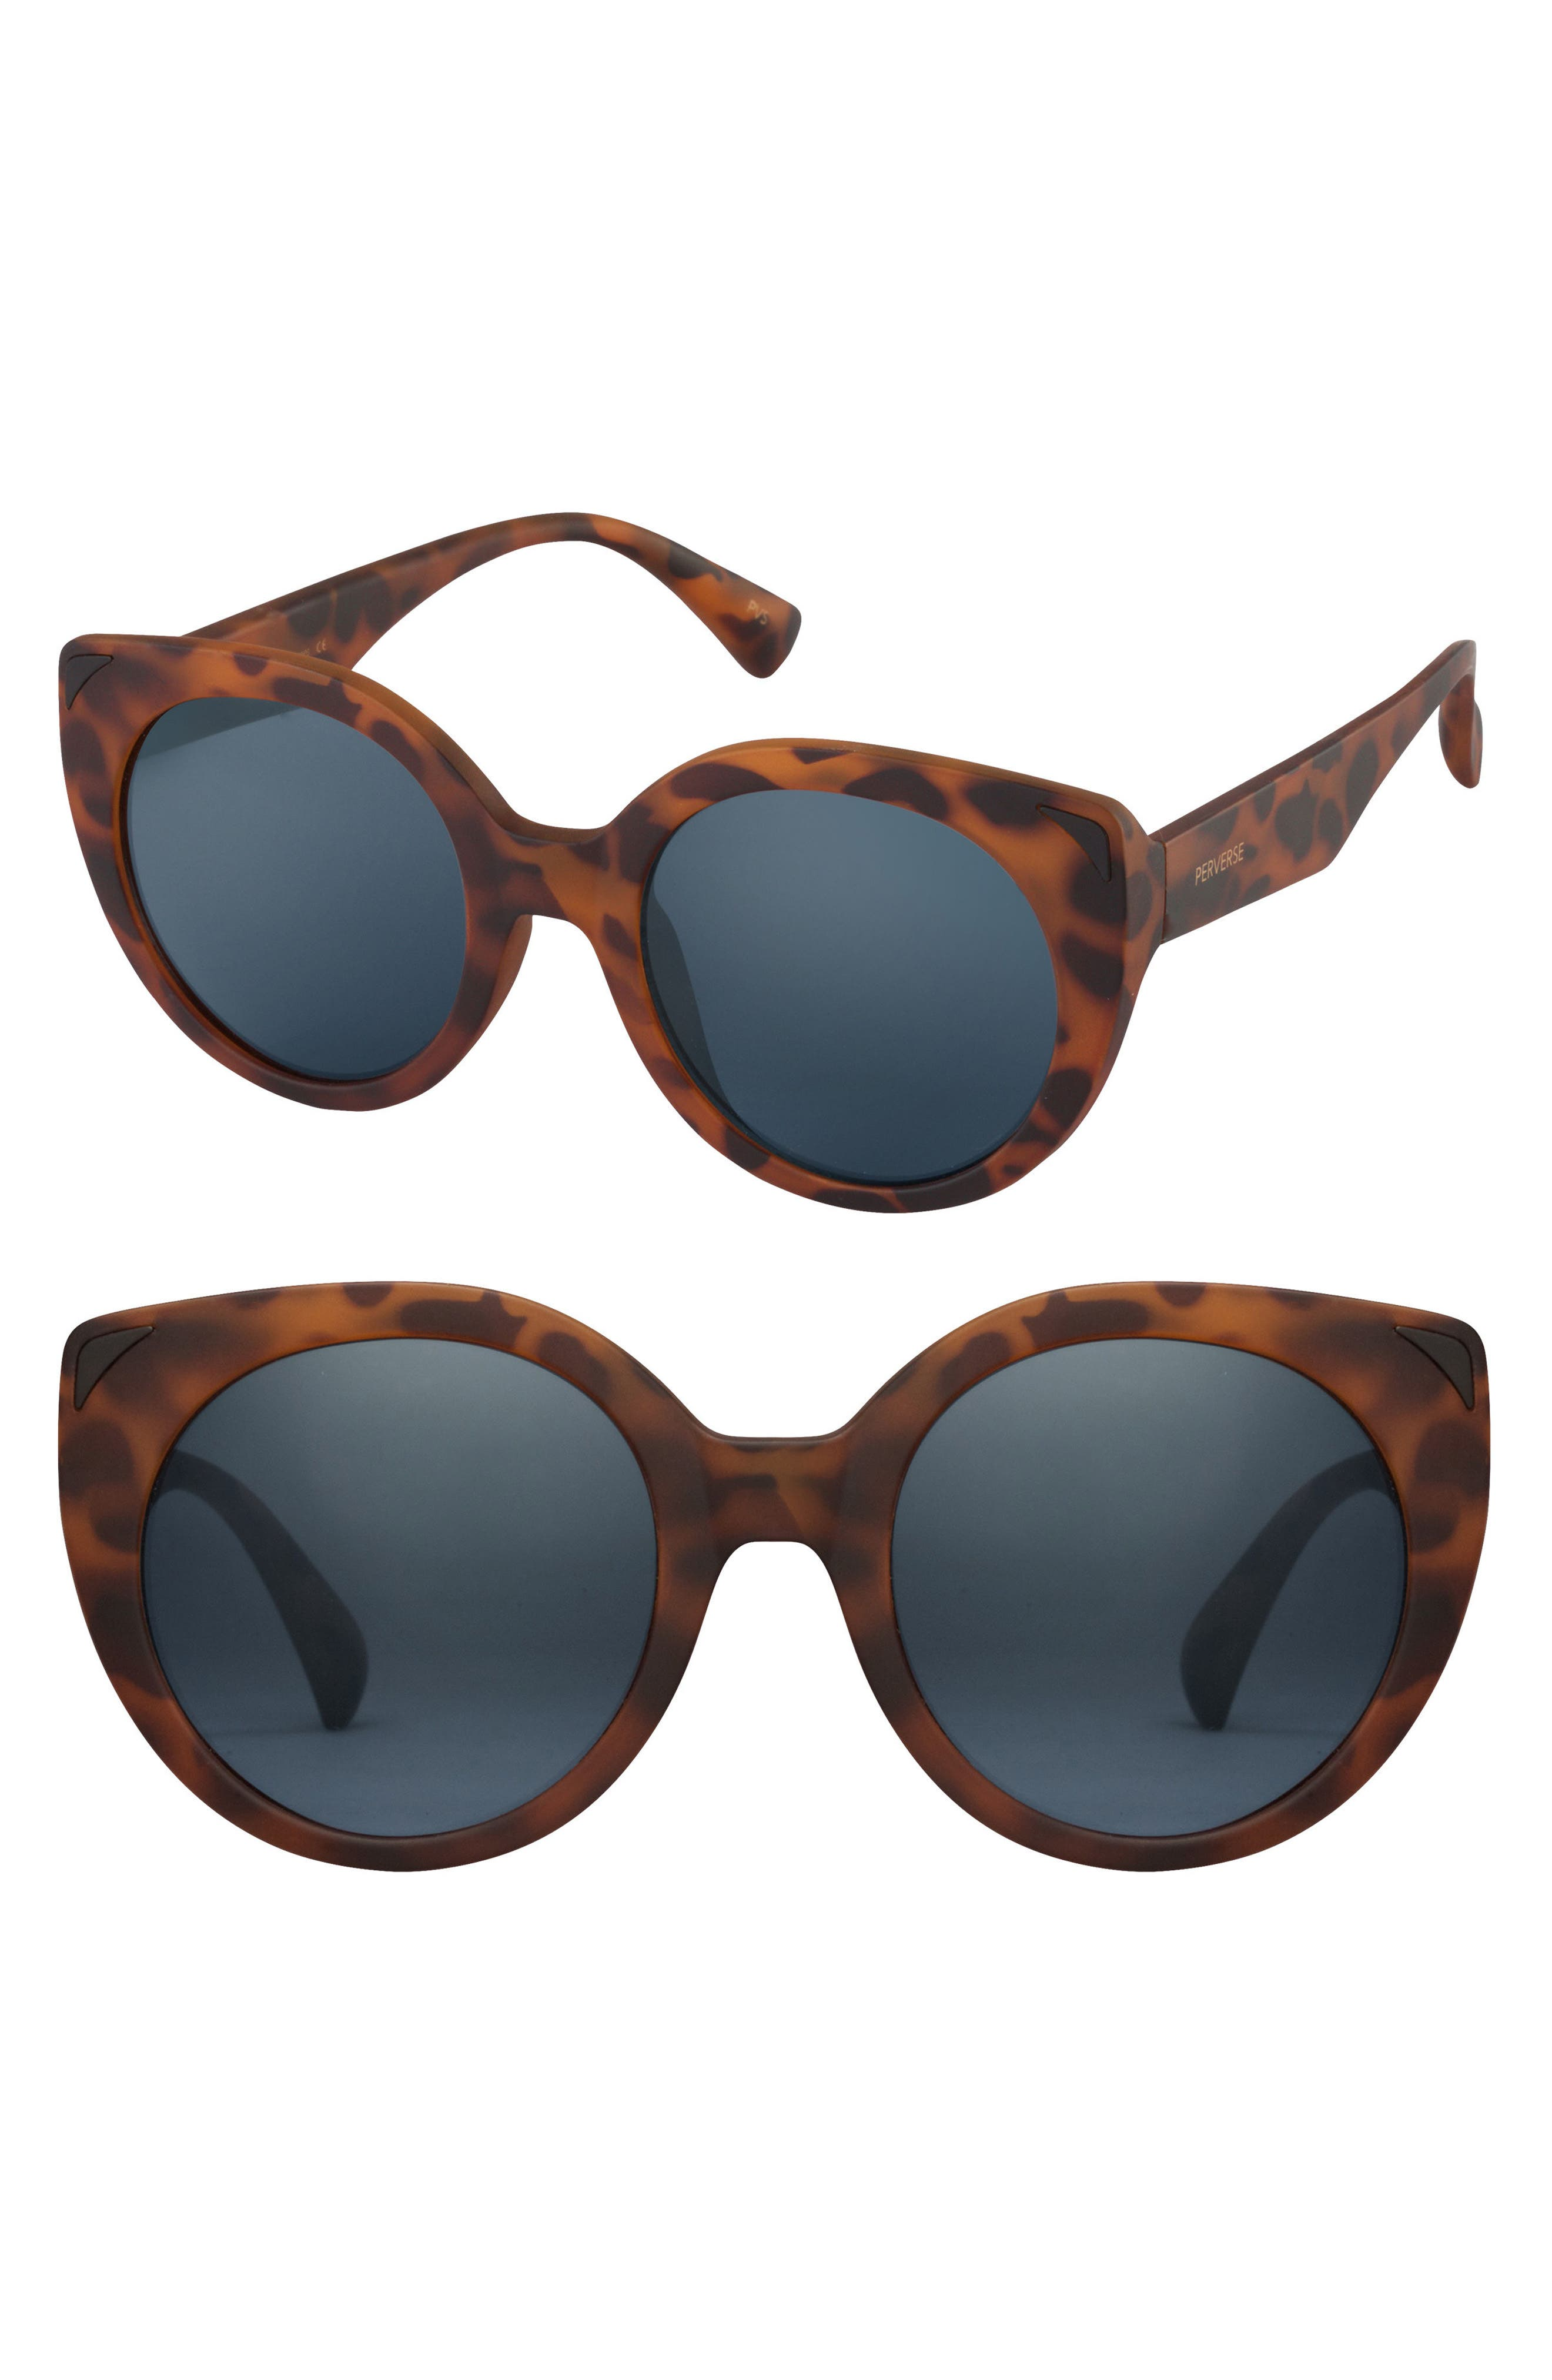 49mm Feline Round Cat Eye Sunglasses,                         Main,                         color, Tortoise/ Black